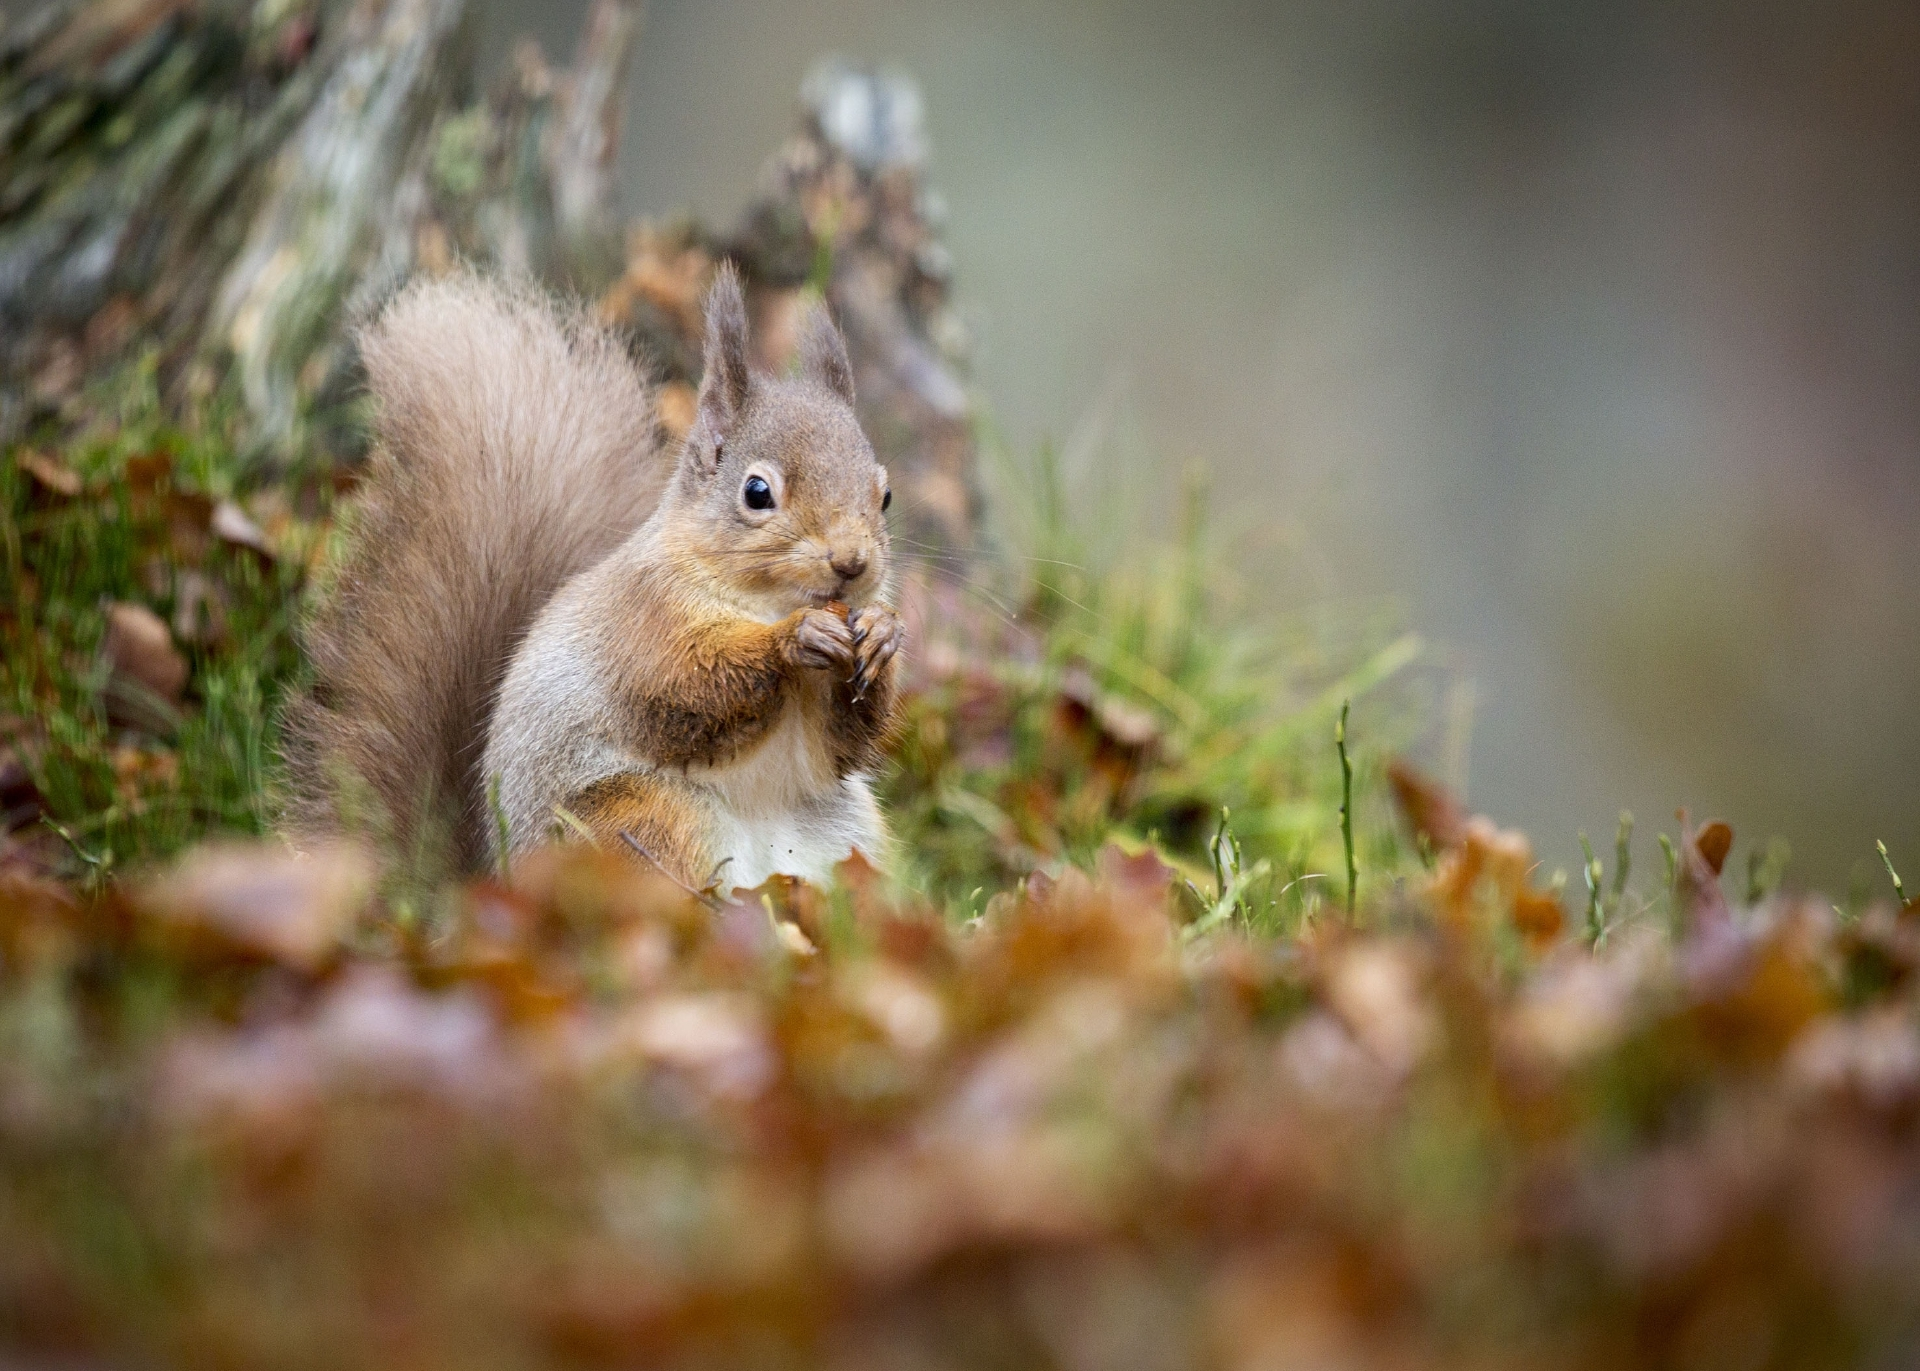 The new project aims to protect Scotland's natural environment and wildlife.